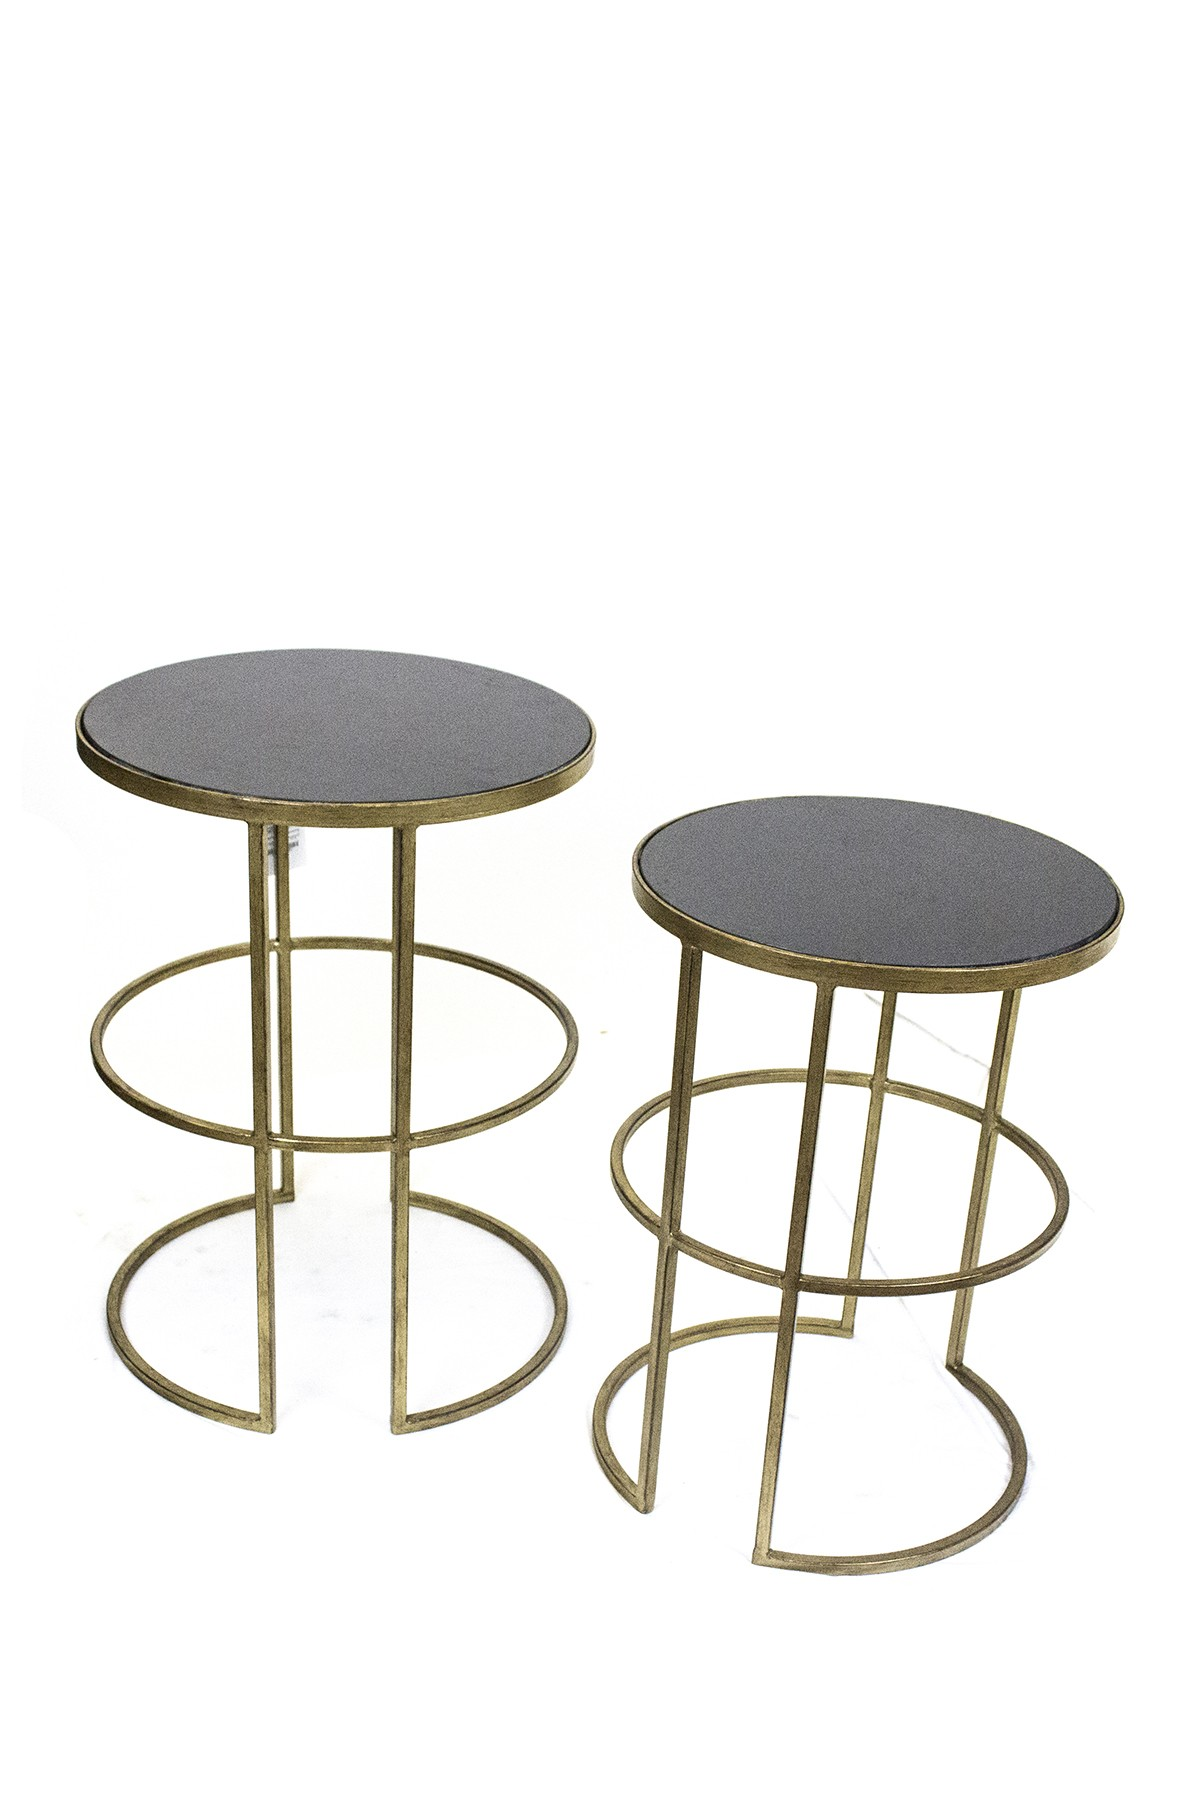 sagebrook home gold white accent tables set nordstrom rack table office kitchen with leaf furniture feet short coffee round quilted toppers metal drum wicker pier one best